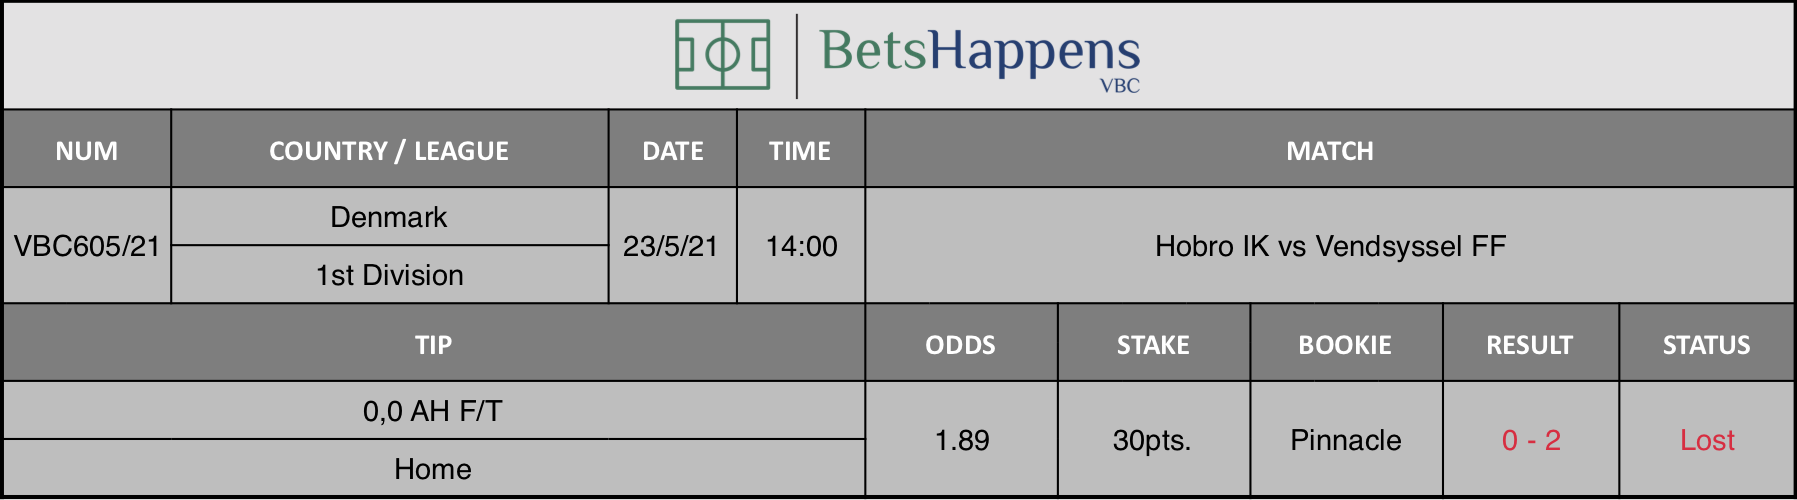 Results of our tip for the Hobro IK vs Vendsyssel FF match where 0,0 AH F/T  Home is recommended.